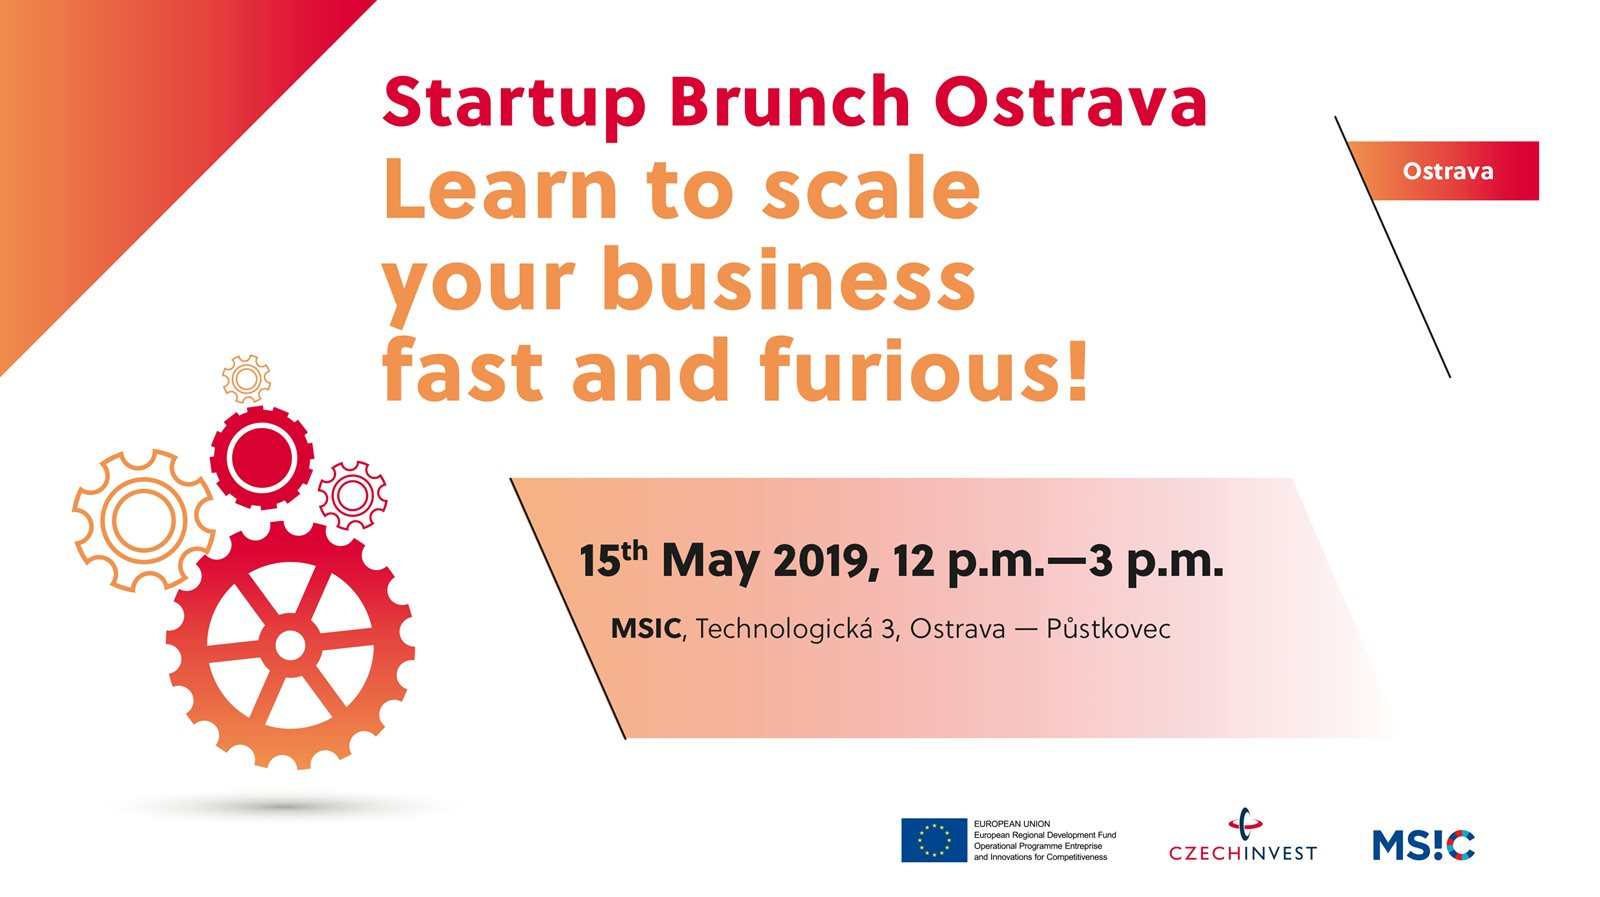 Startup Brunch Ostrava - Learn to scale your business fast and furious! attachment